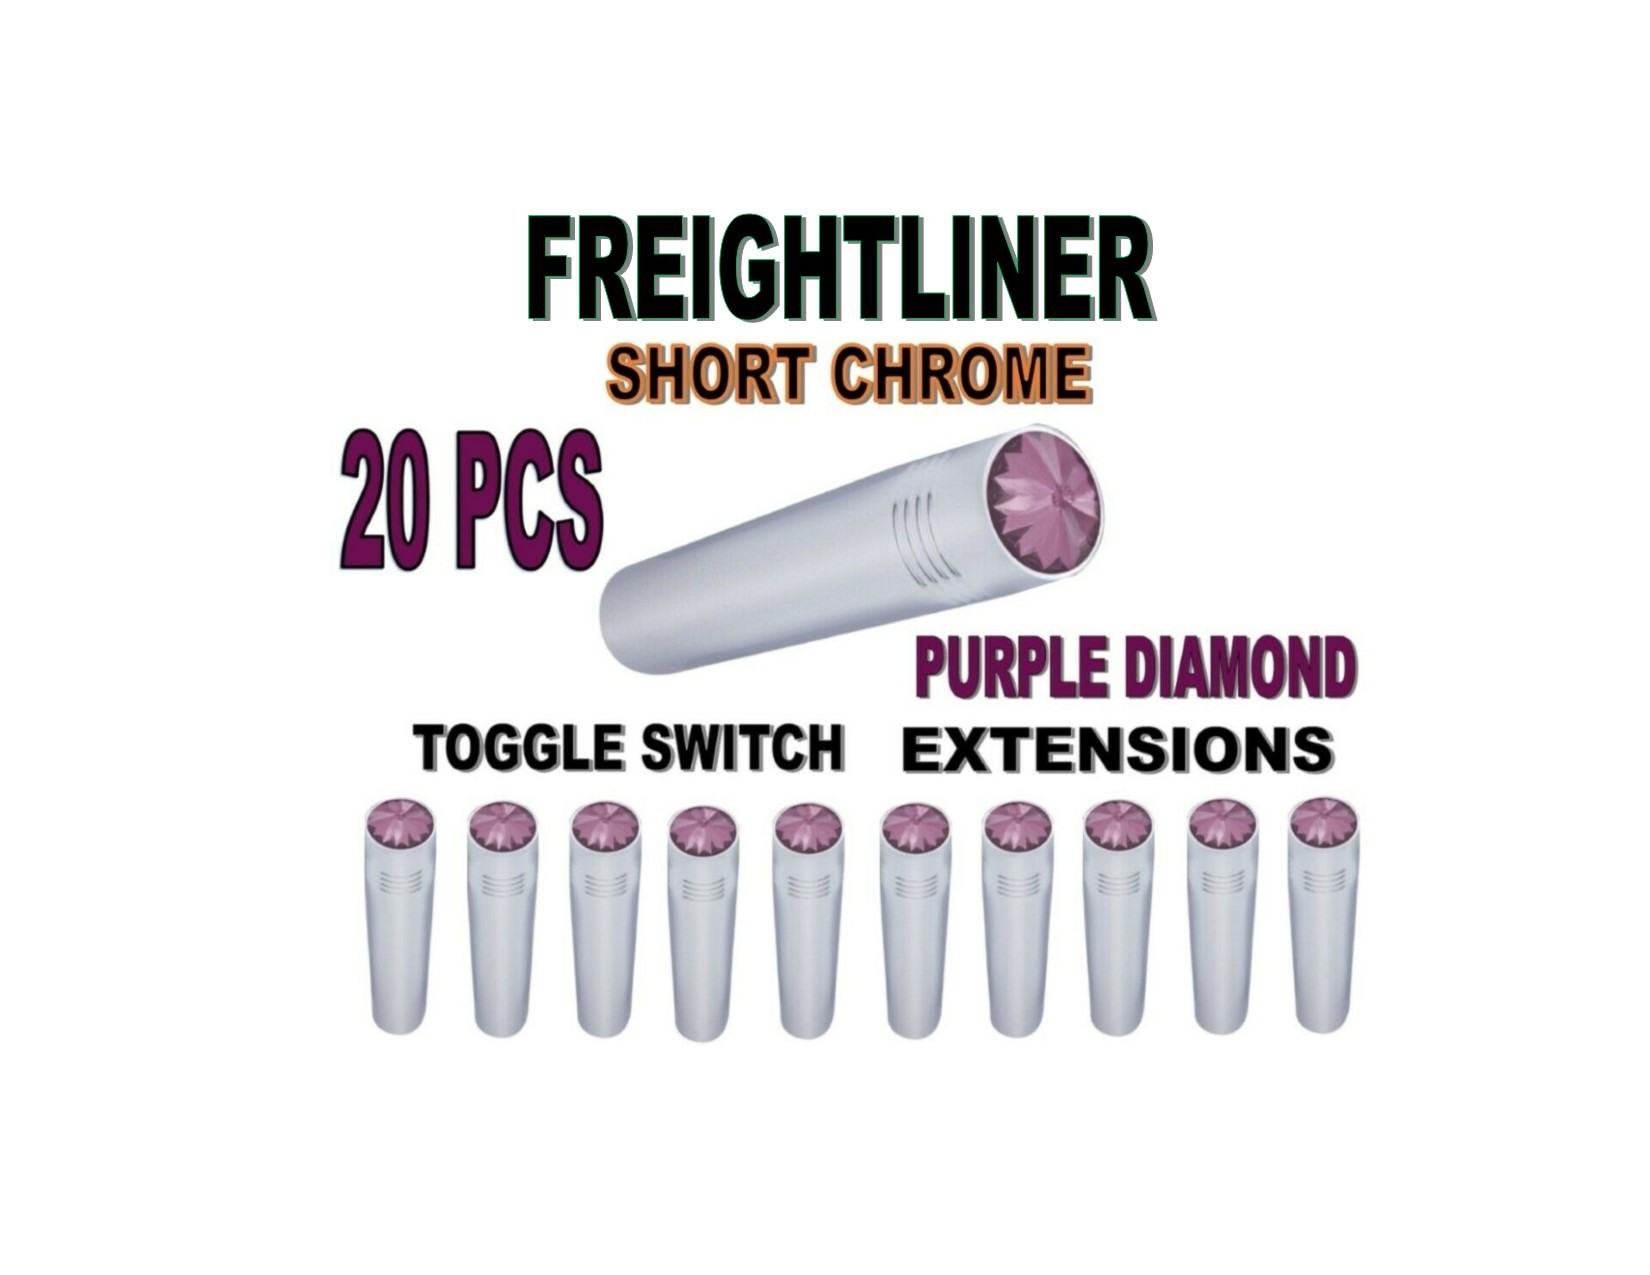 Toggle Switch Ext. Short Chrome - PURPLE Diamond (X20) FREIGHTLINER